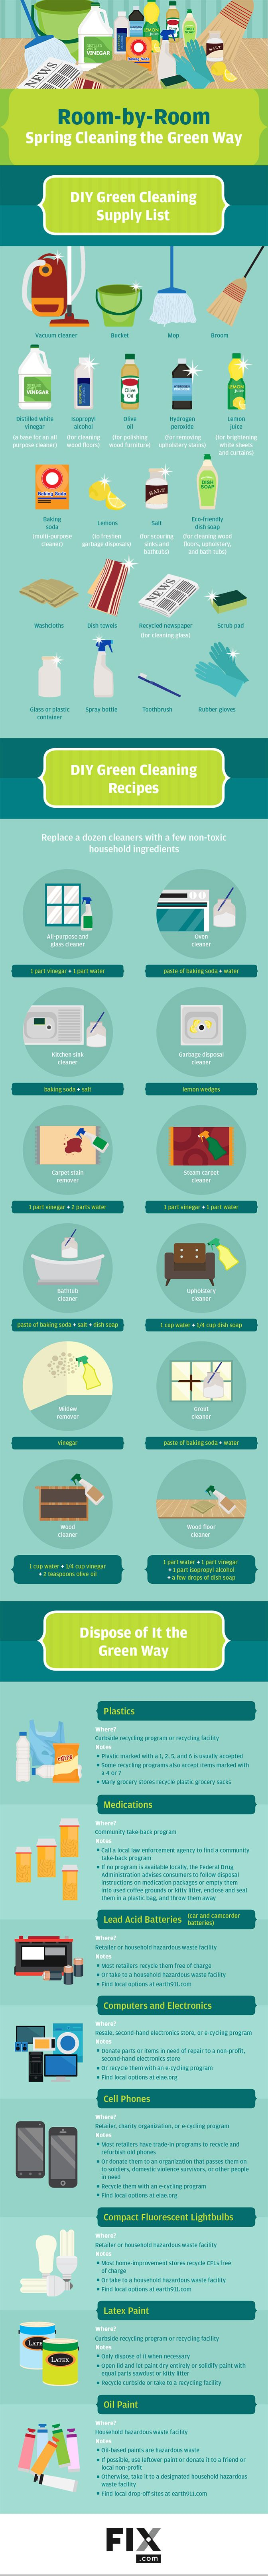 648 best Life: Green images on Pinterest | Baby activities, Clam and ...